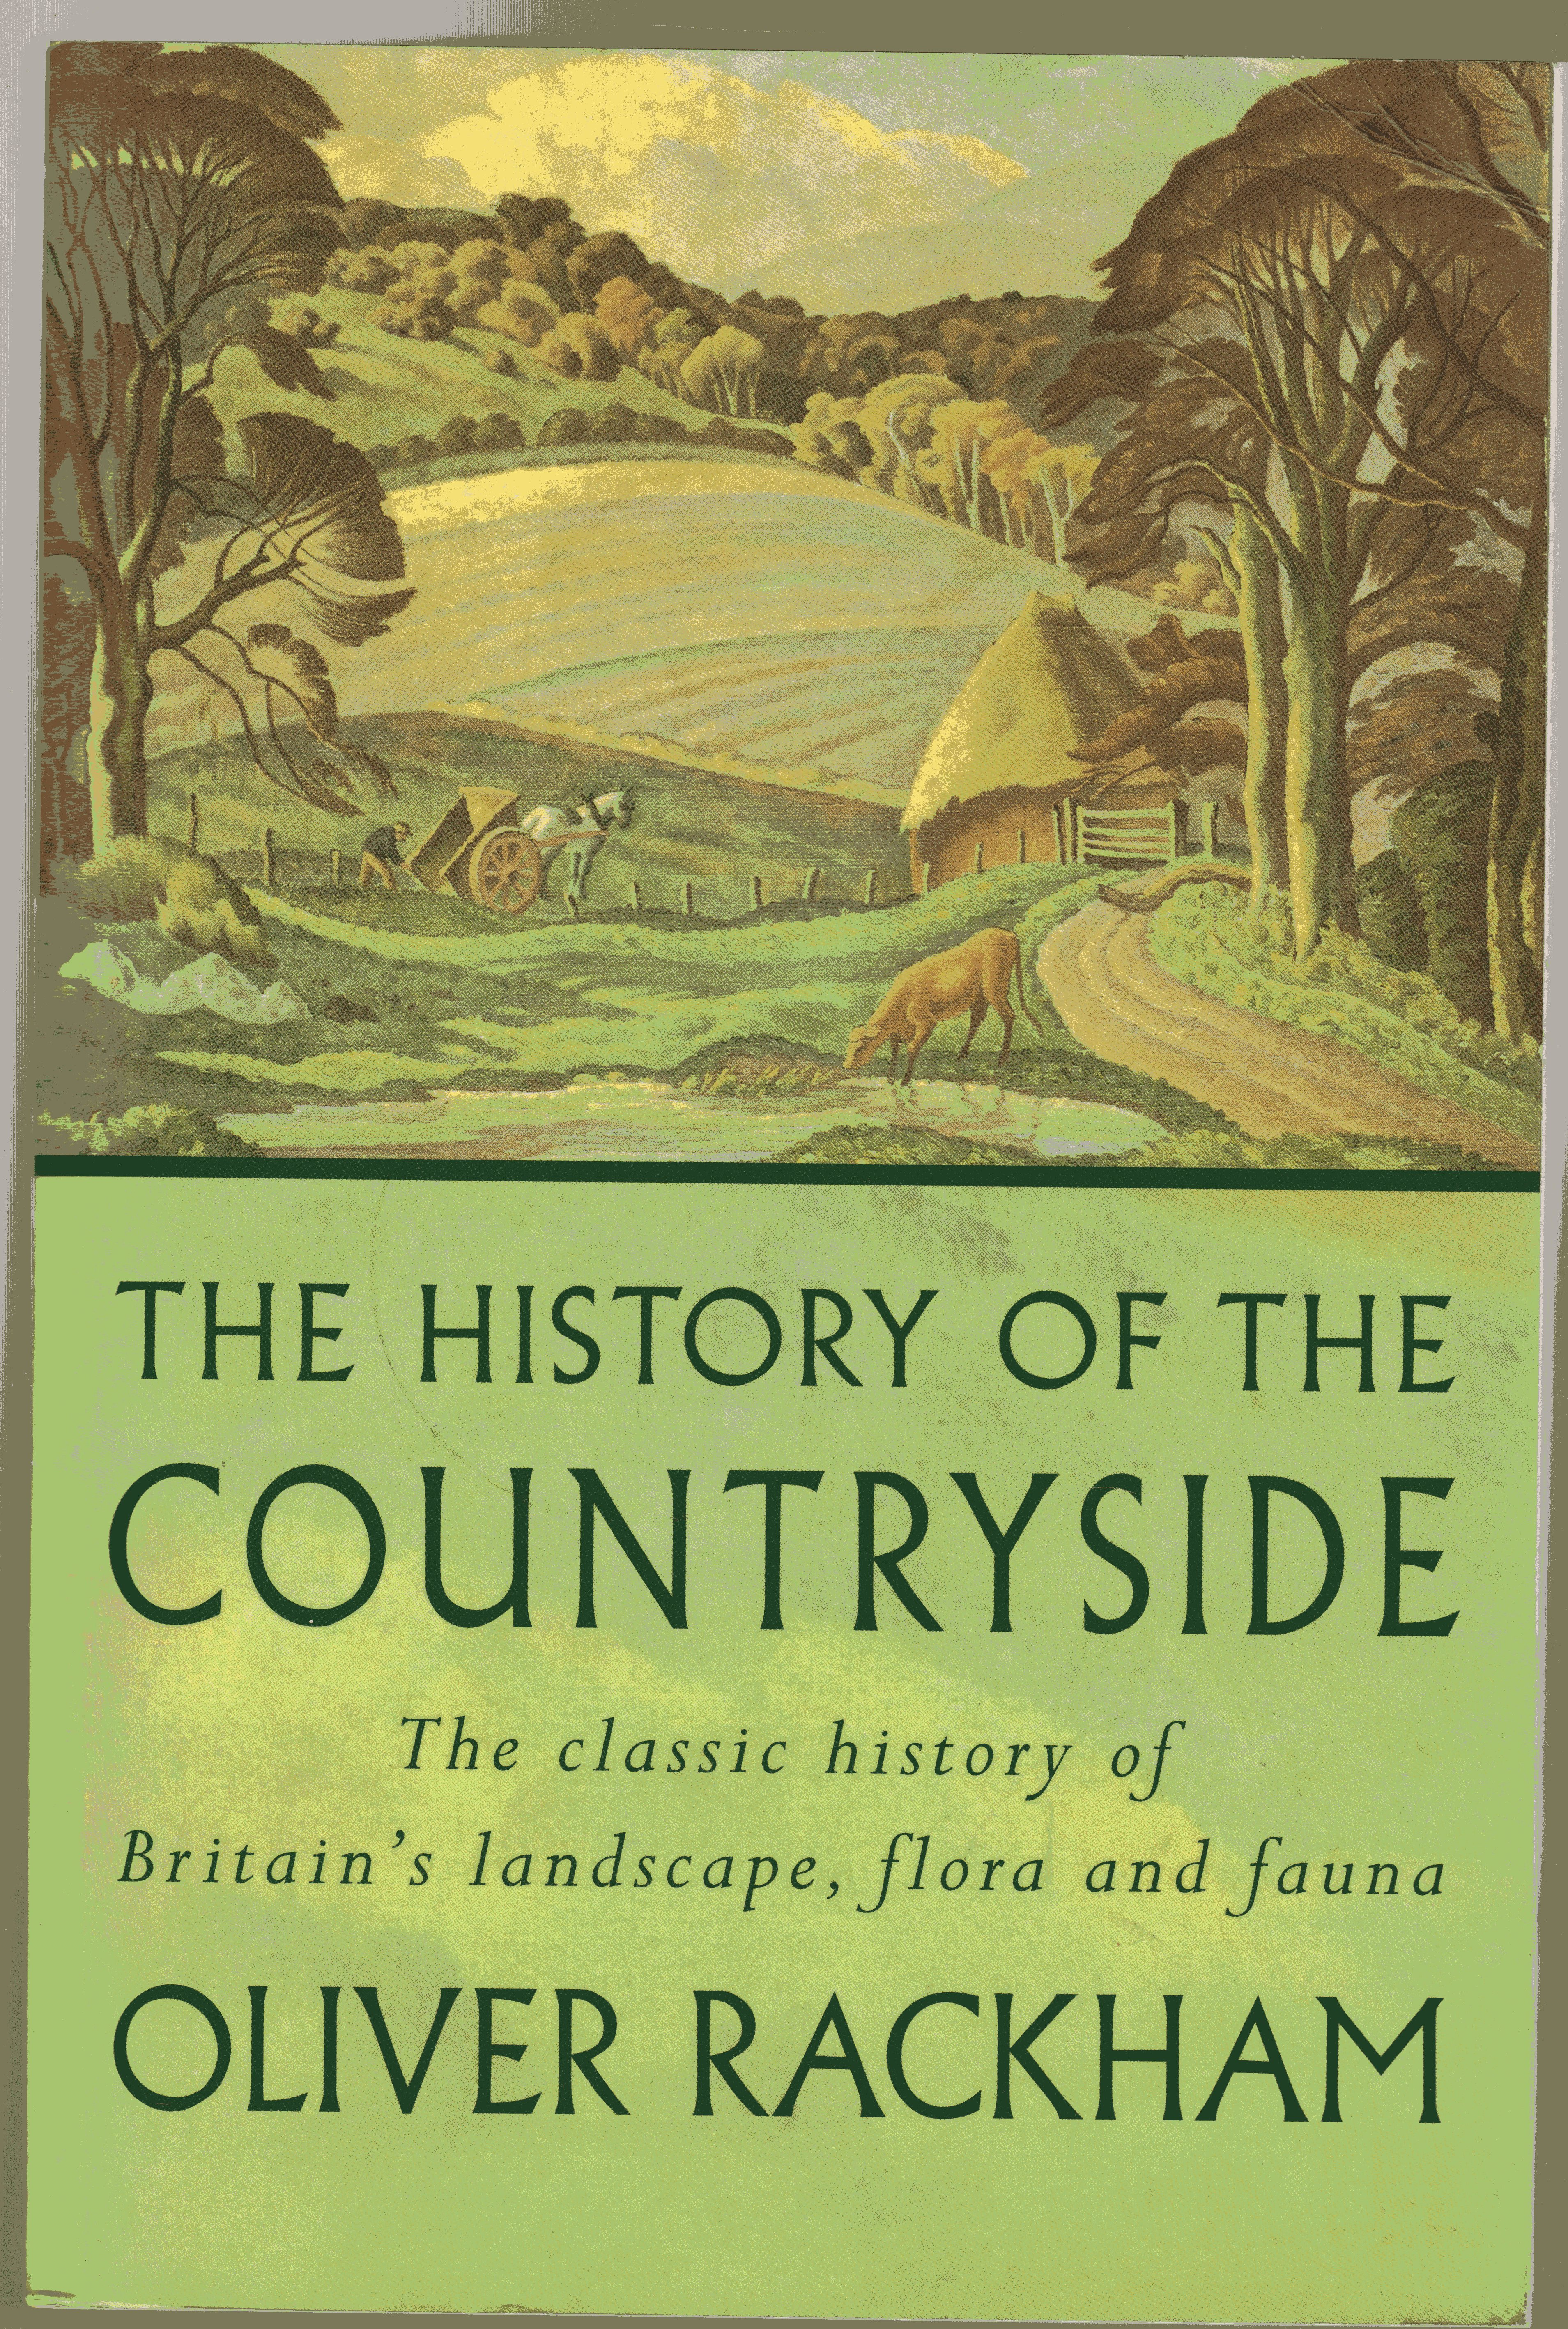 Image for The History of the Countryside : The Classic History of Britain's Landscape, Flora and Fauna